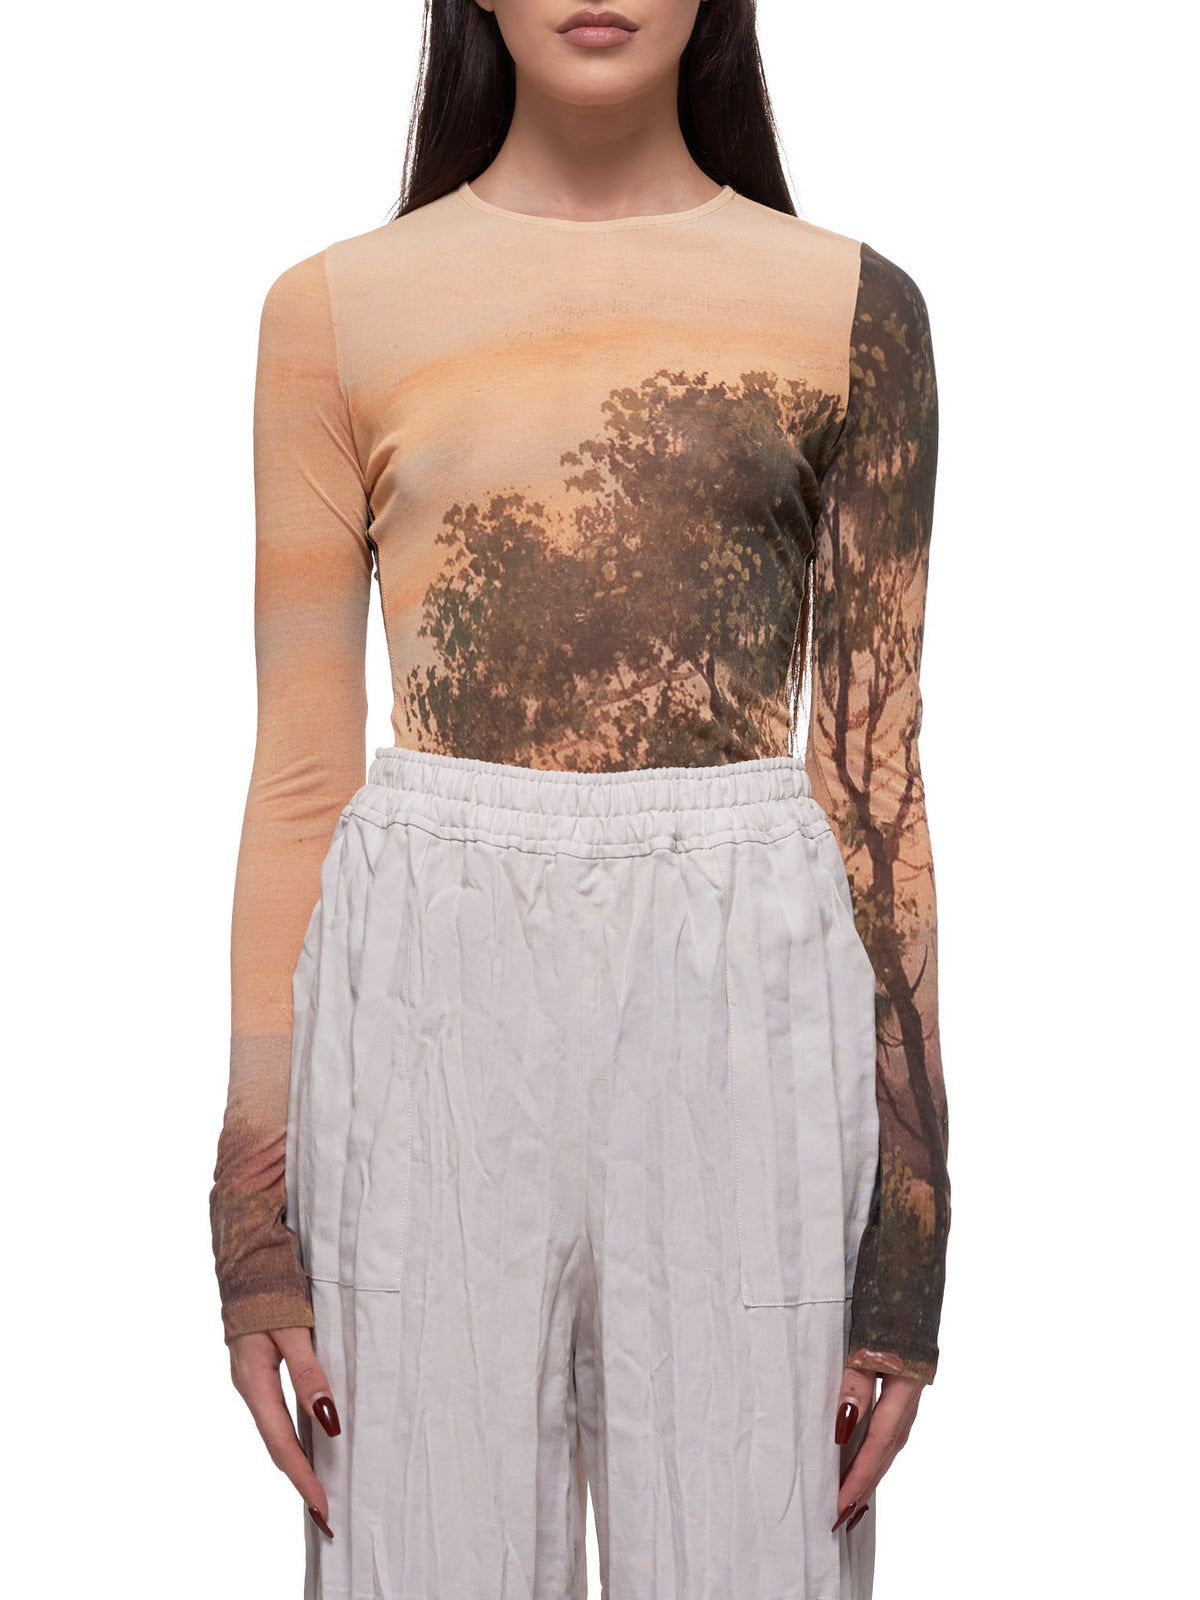 Graphic Printed Sheer Long Sleeve Shirt (TSHI000203-LANDSCAPE)